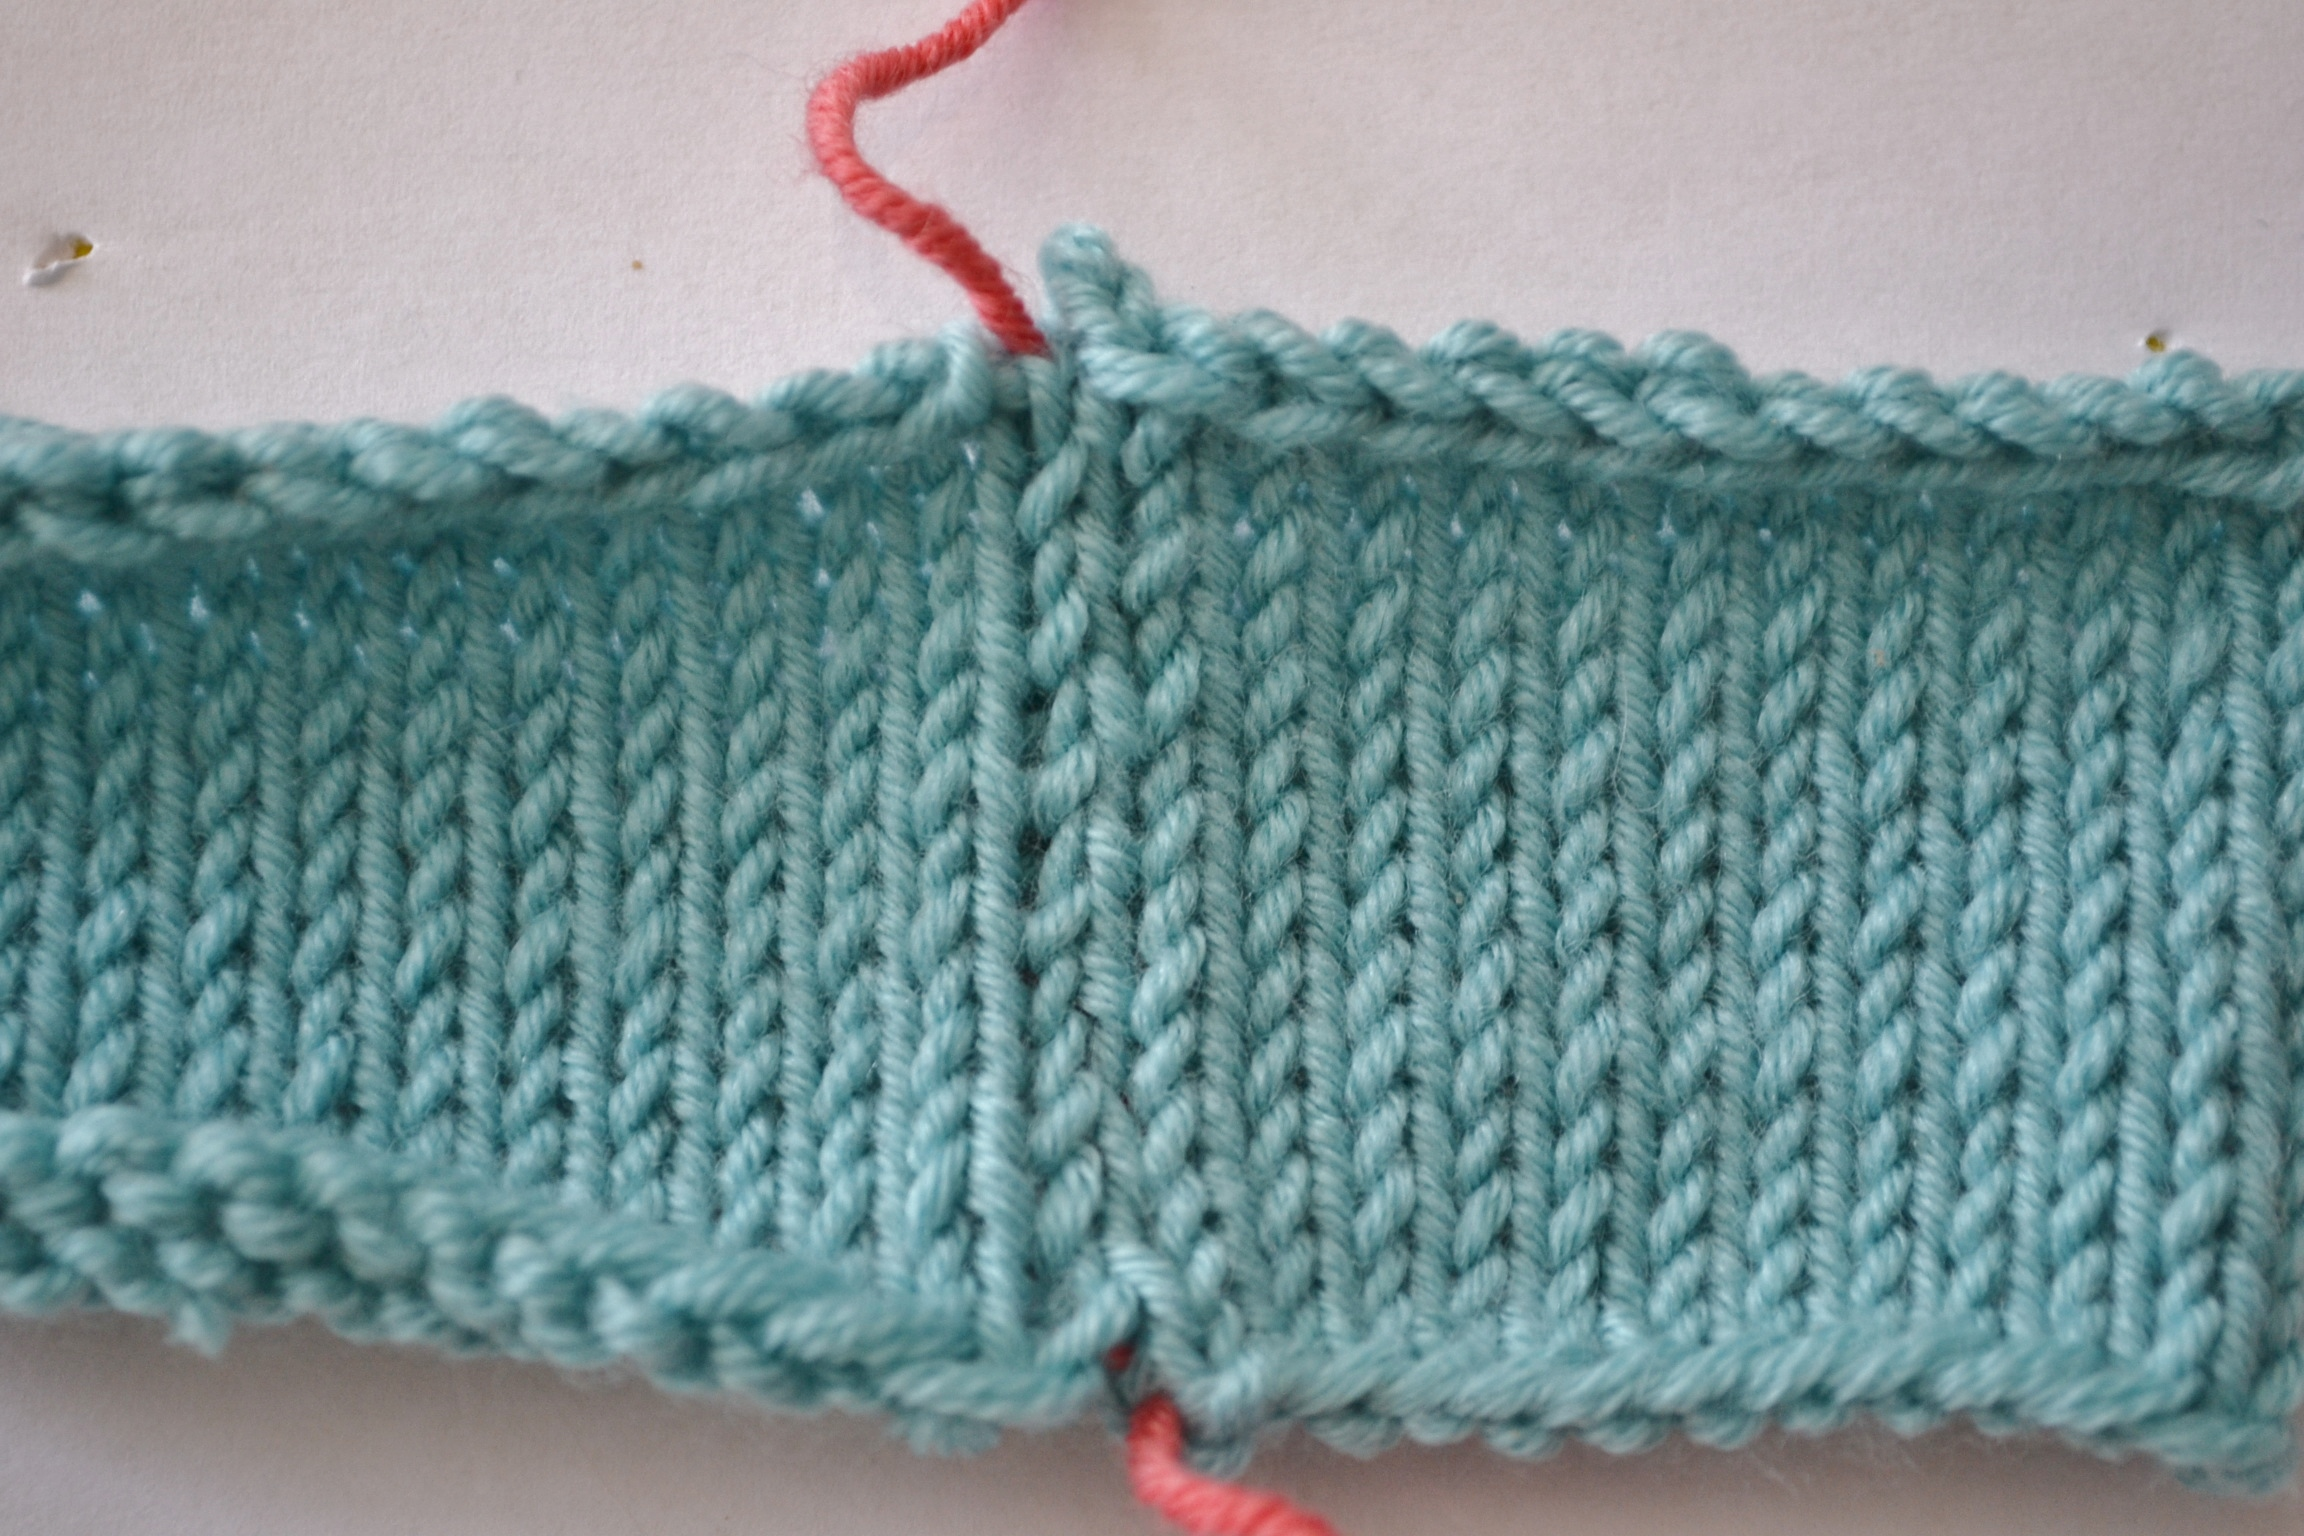 Knitting Edge Stitch For Seaming : How to sew invisible vertical seams in knitting with